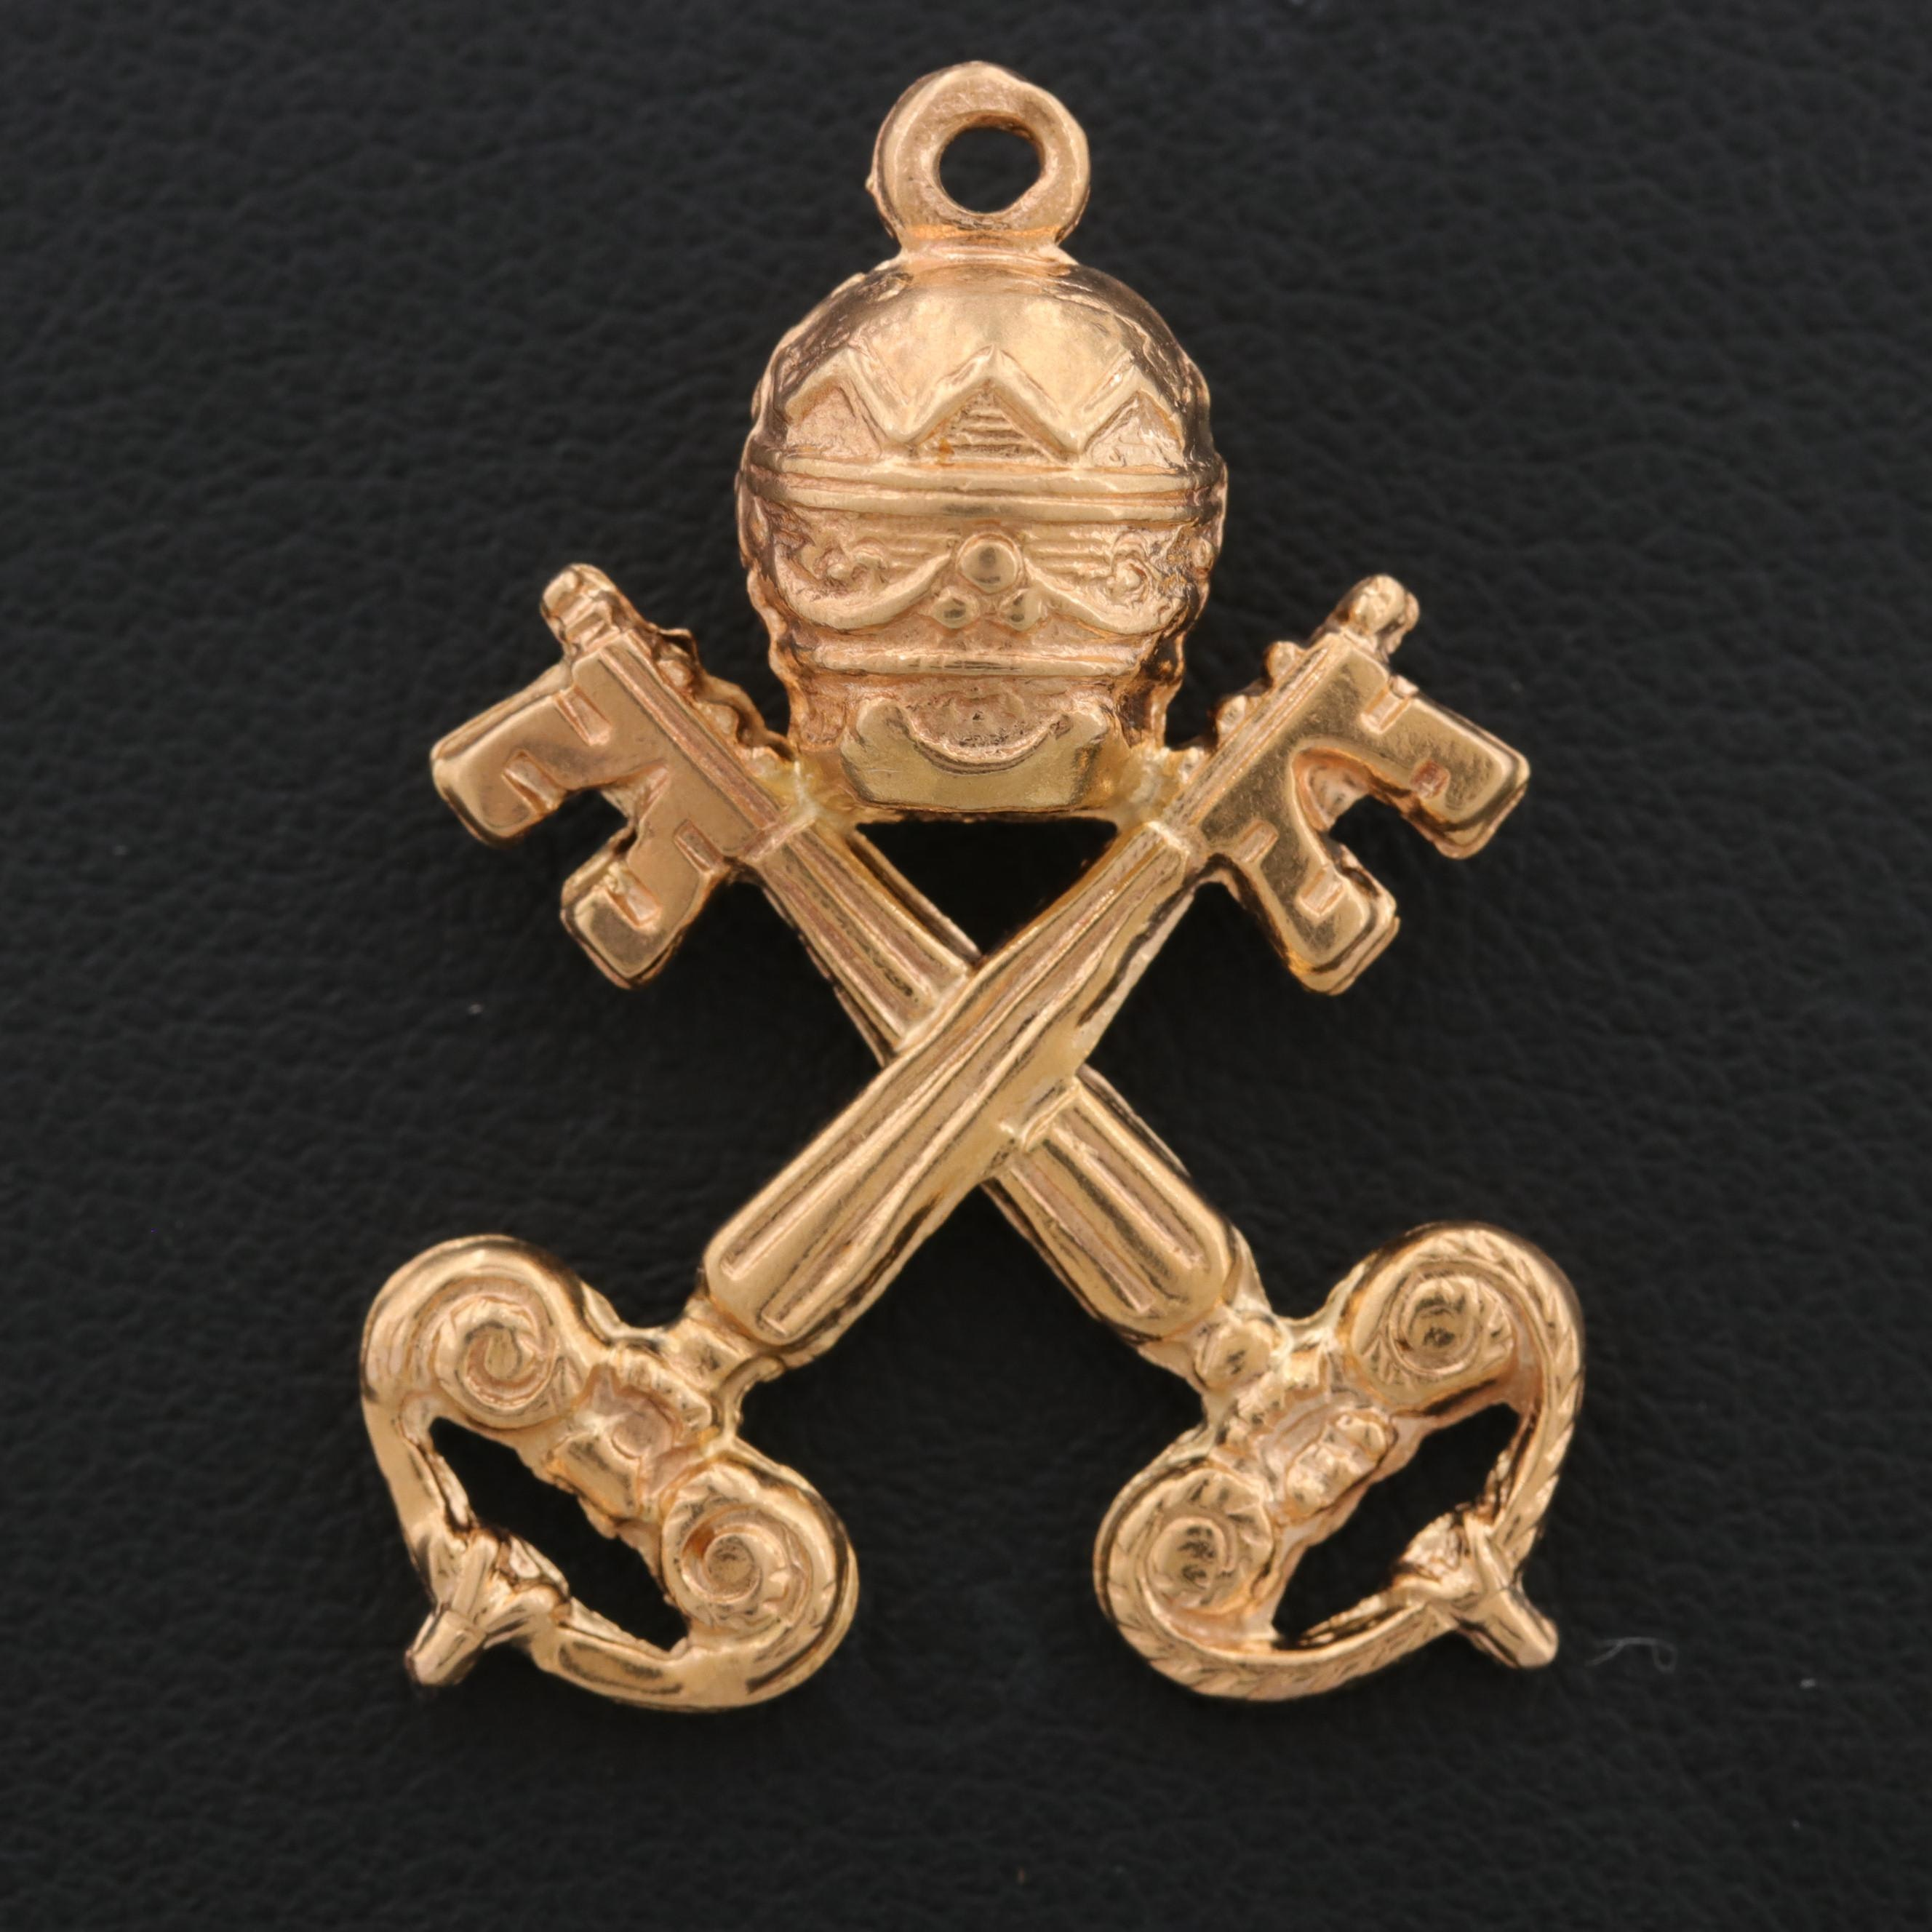 18K Yellow Gold Electroform Papal Crossed Keys and Crown Pendant